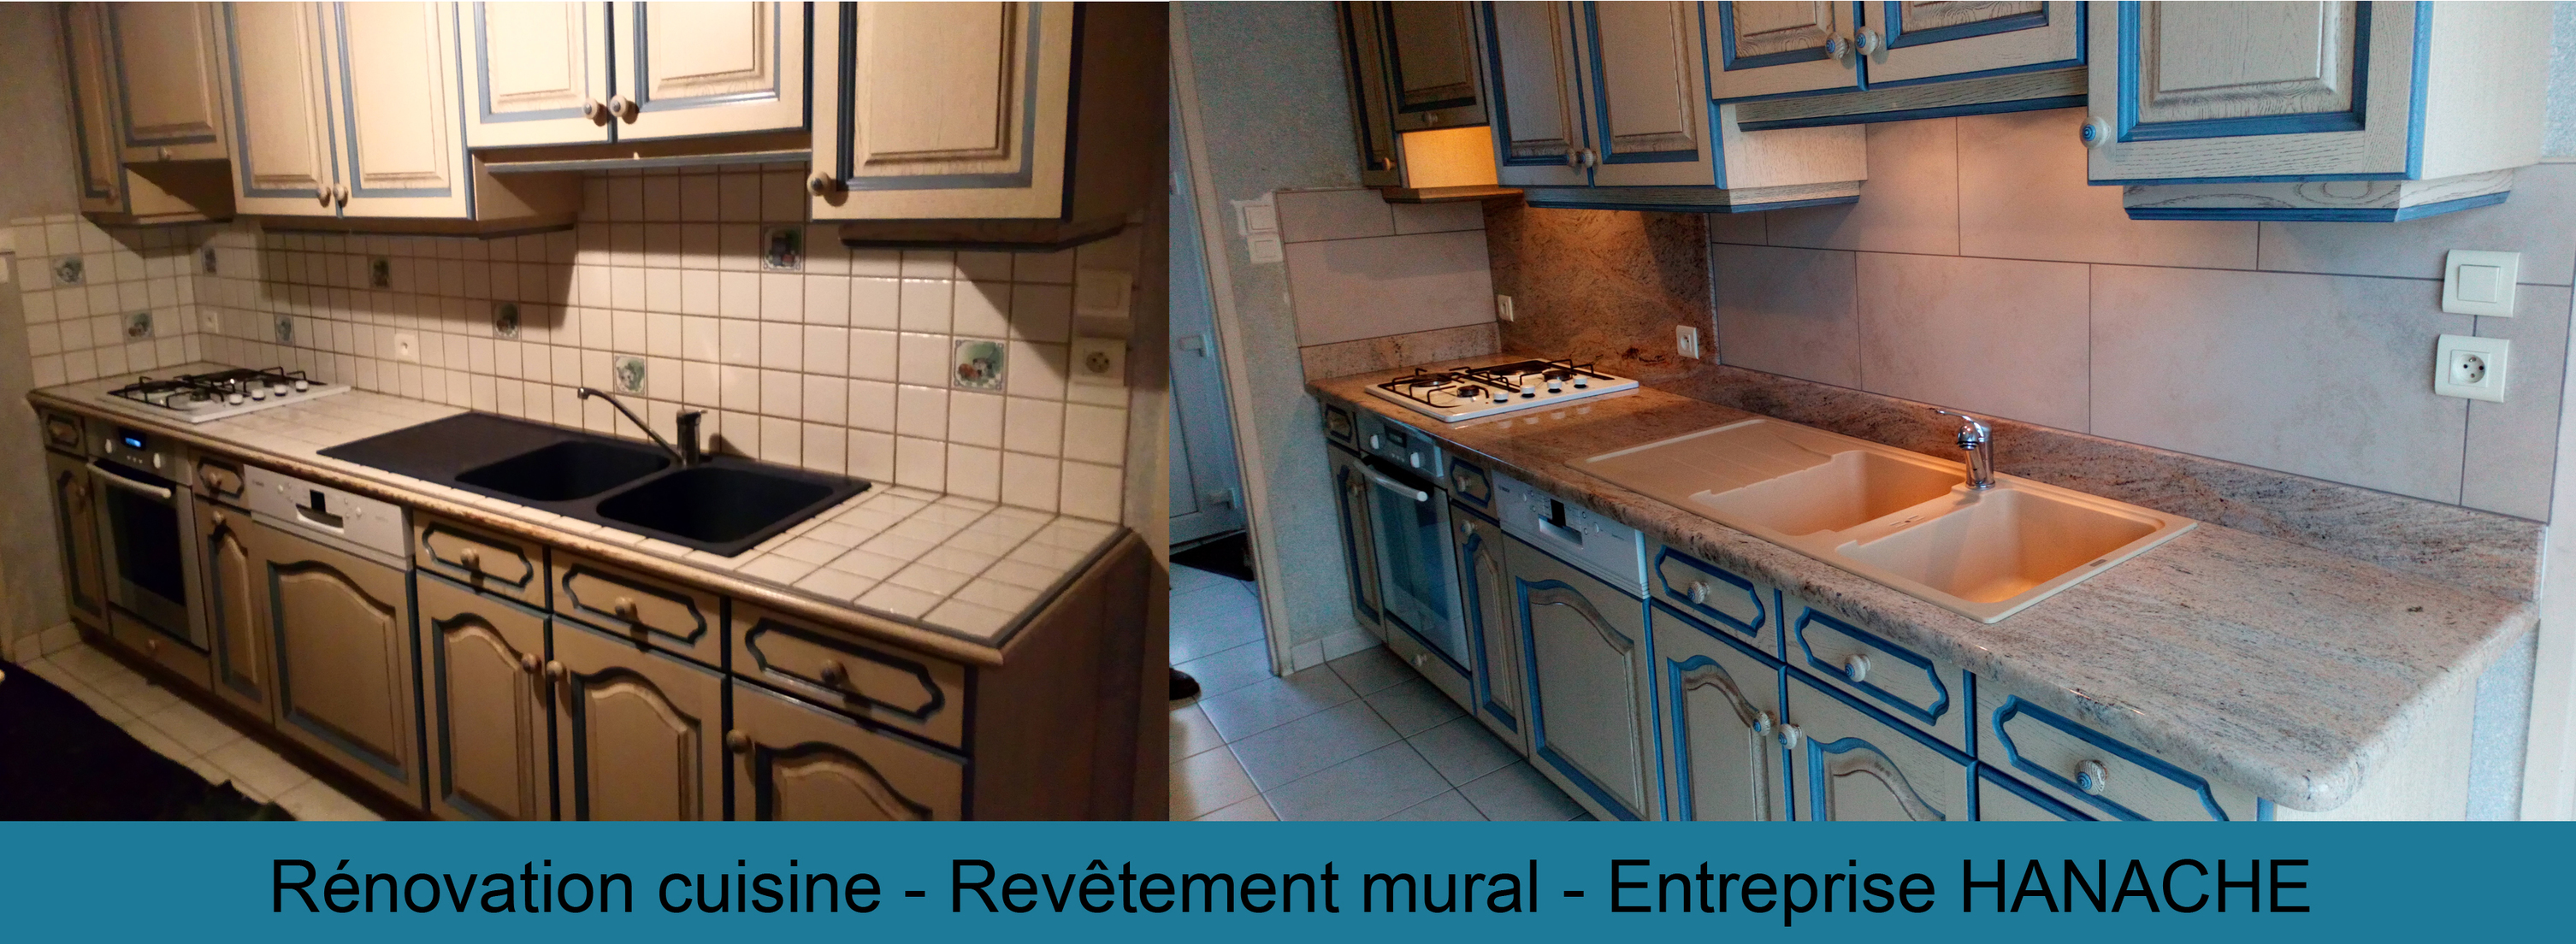 Revetement mural cuisine beautiful revetement mural for Revetement mural cuisine adhesif